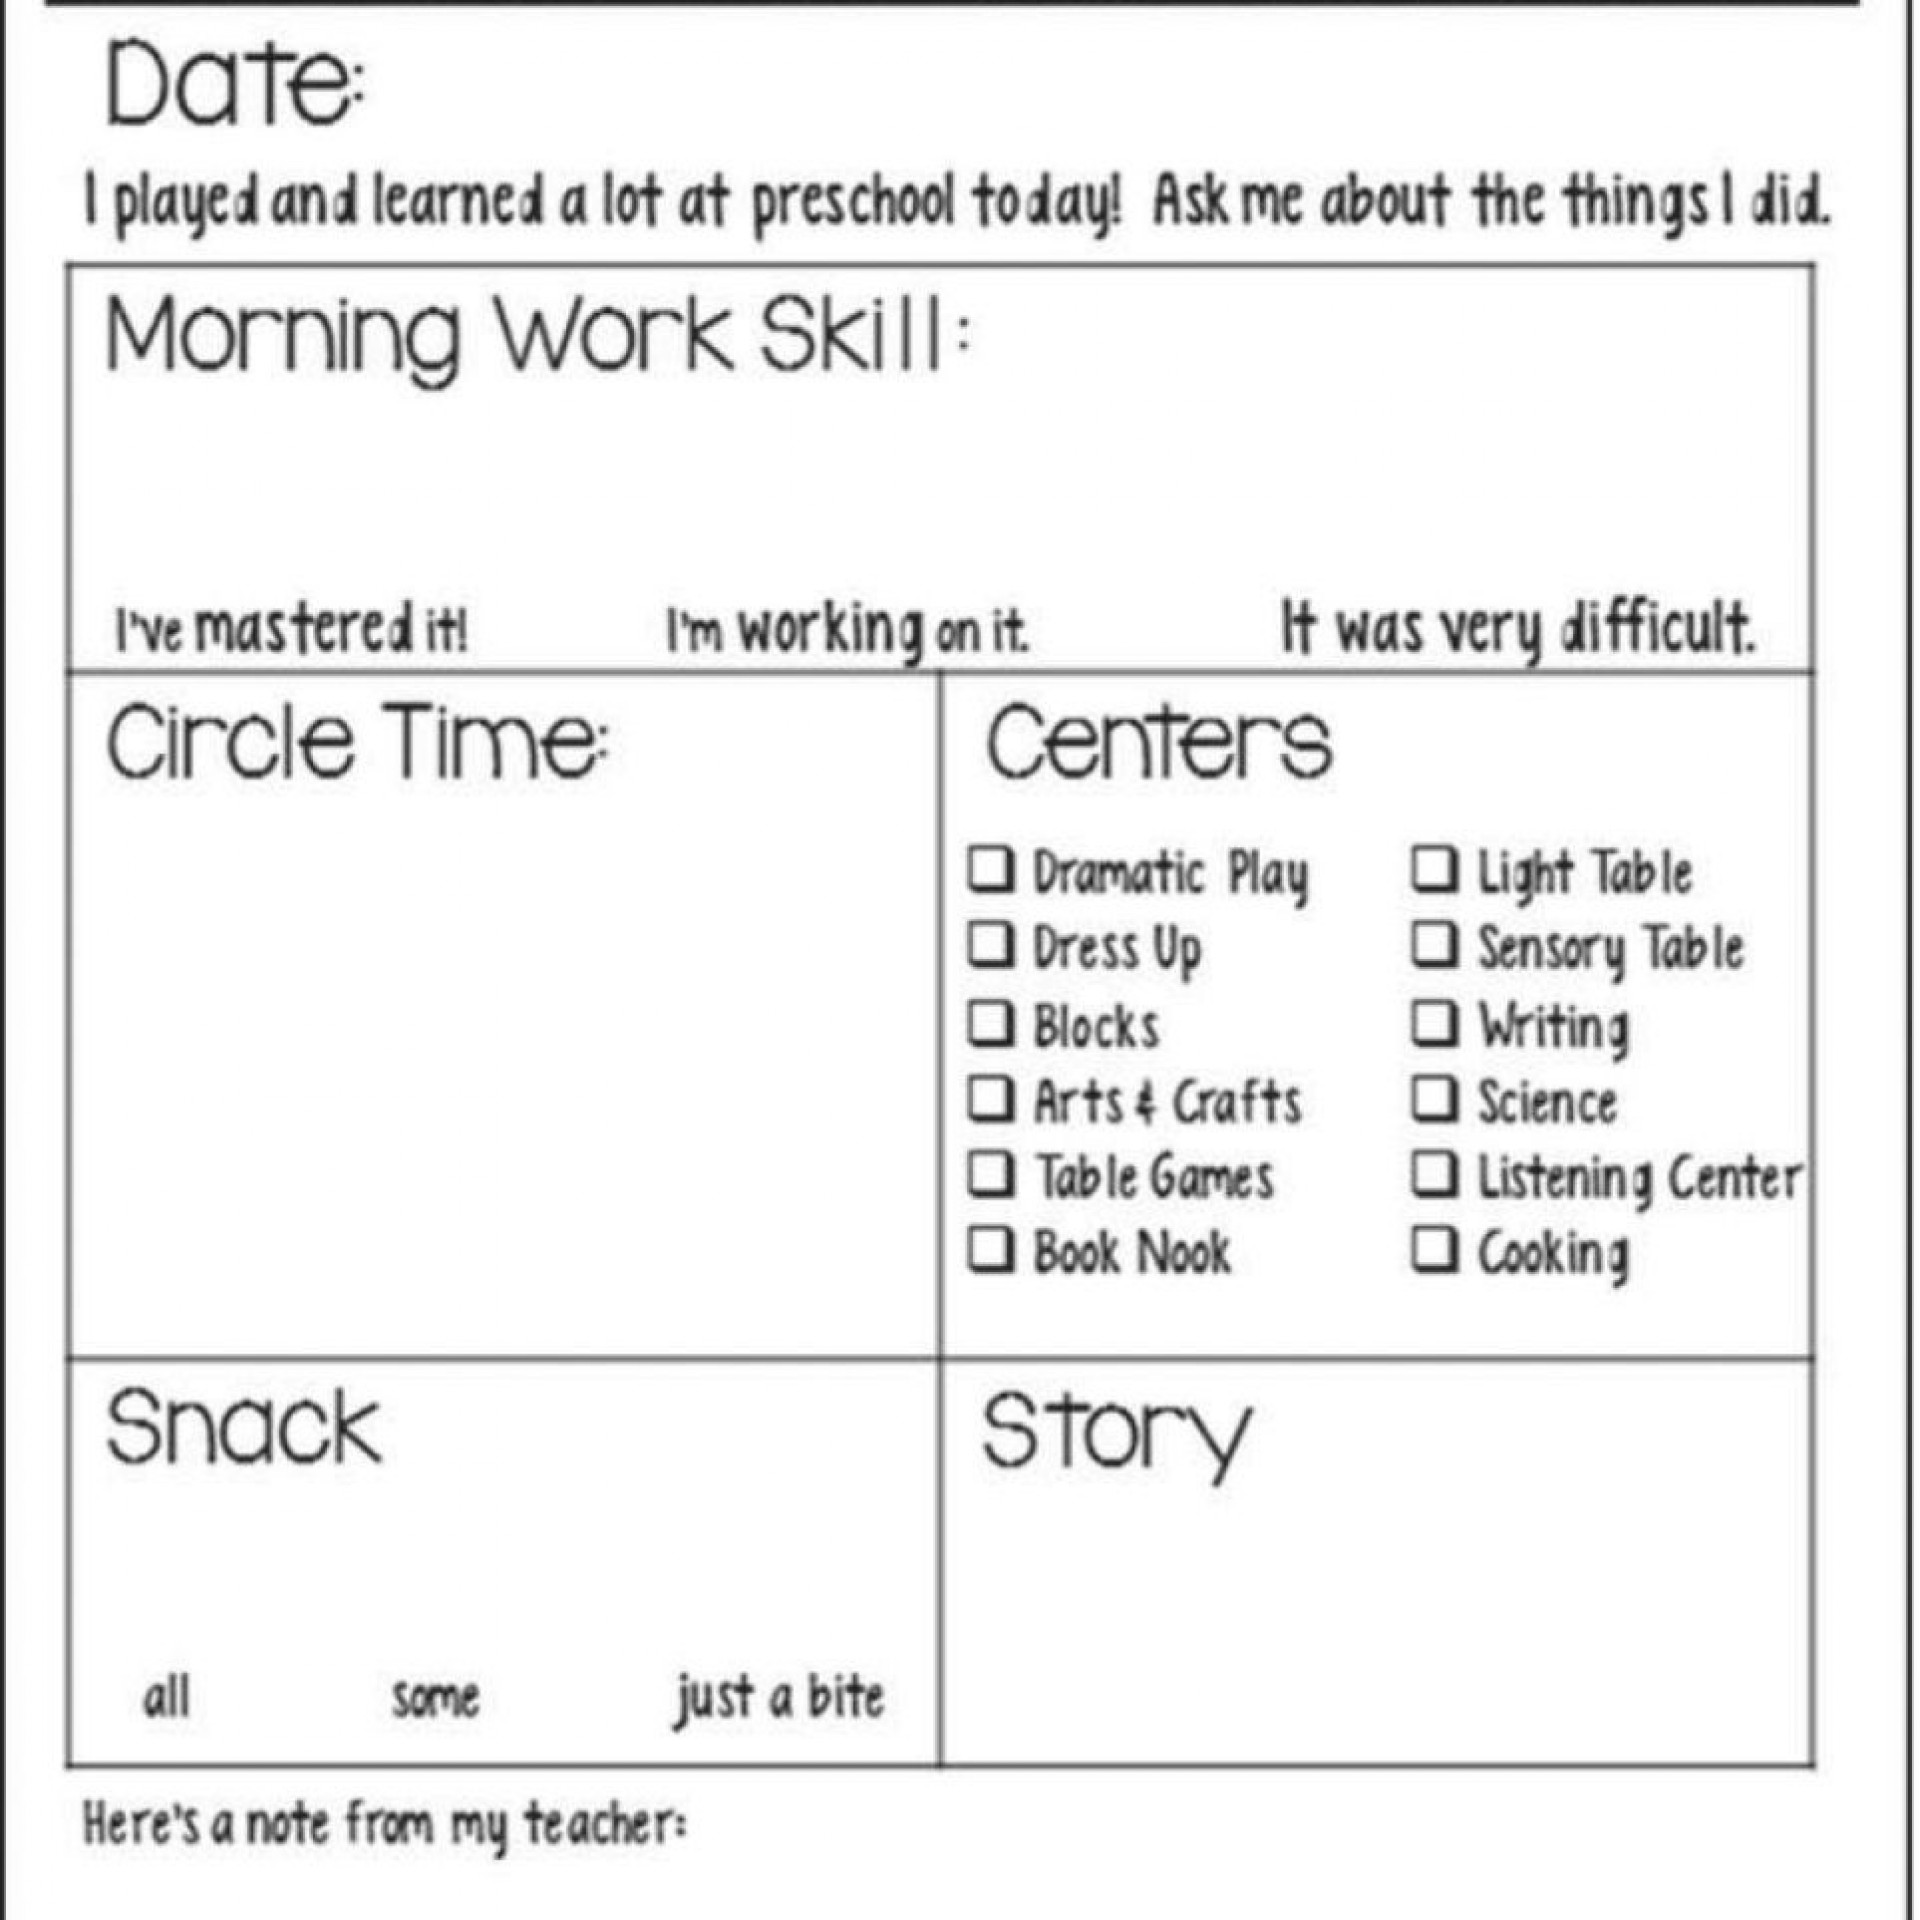 003 Shocking Preschool Daily Report Template Concept  Form Baby Sheet1920